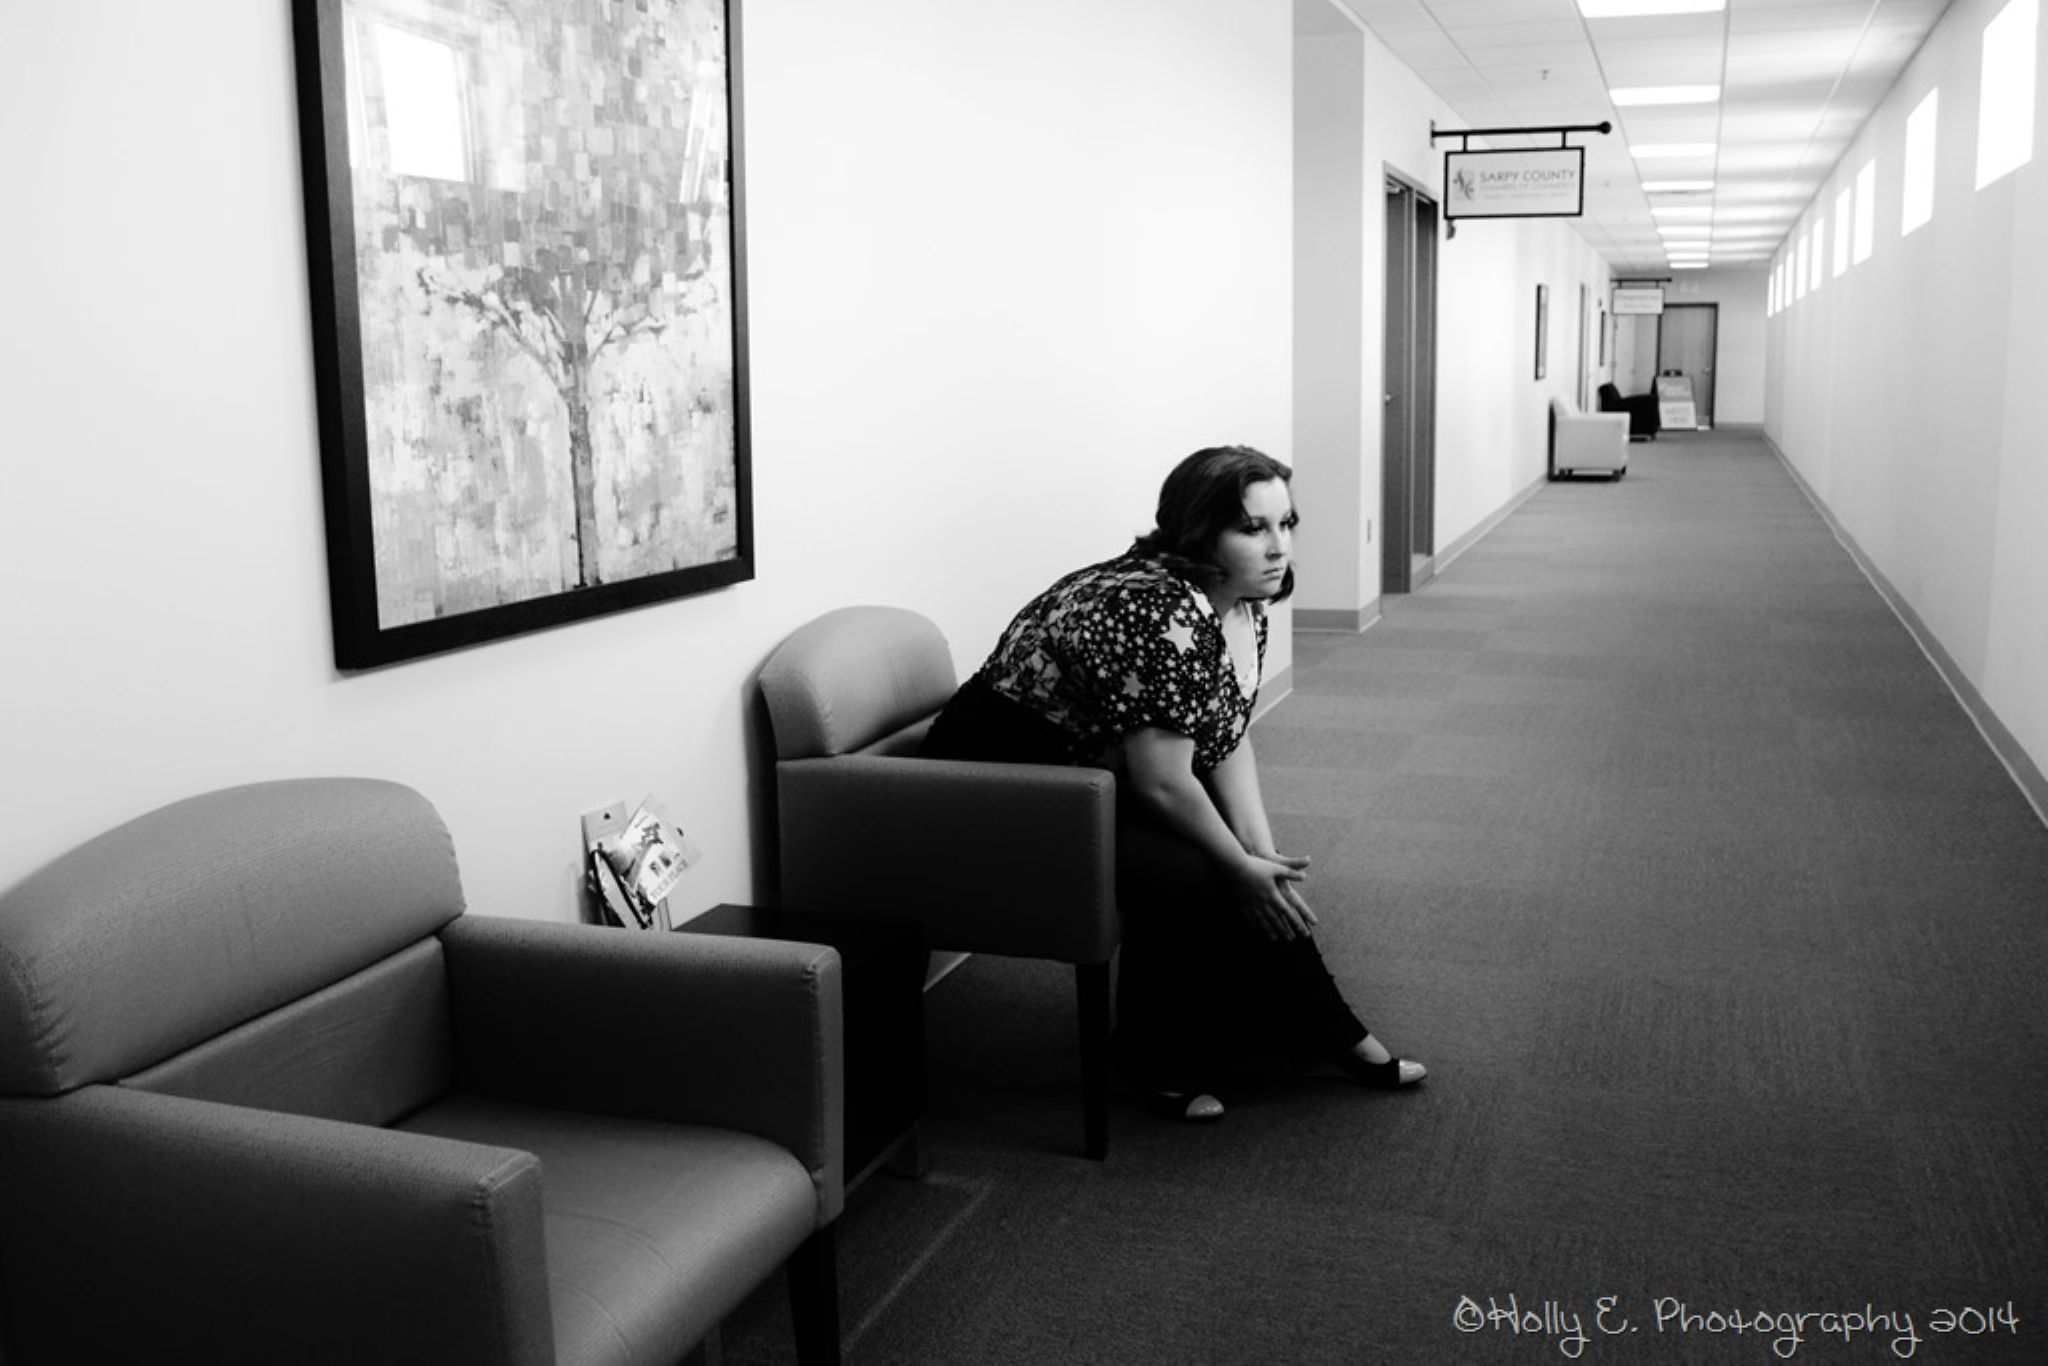 The Wait by Holly E. Photography